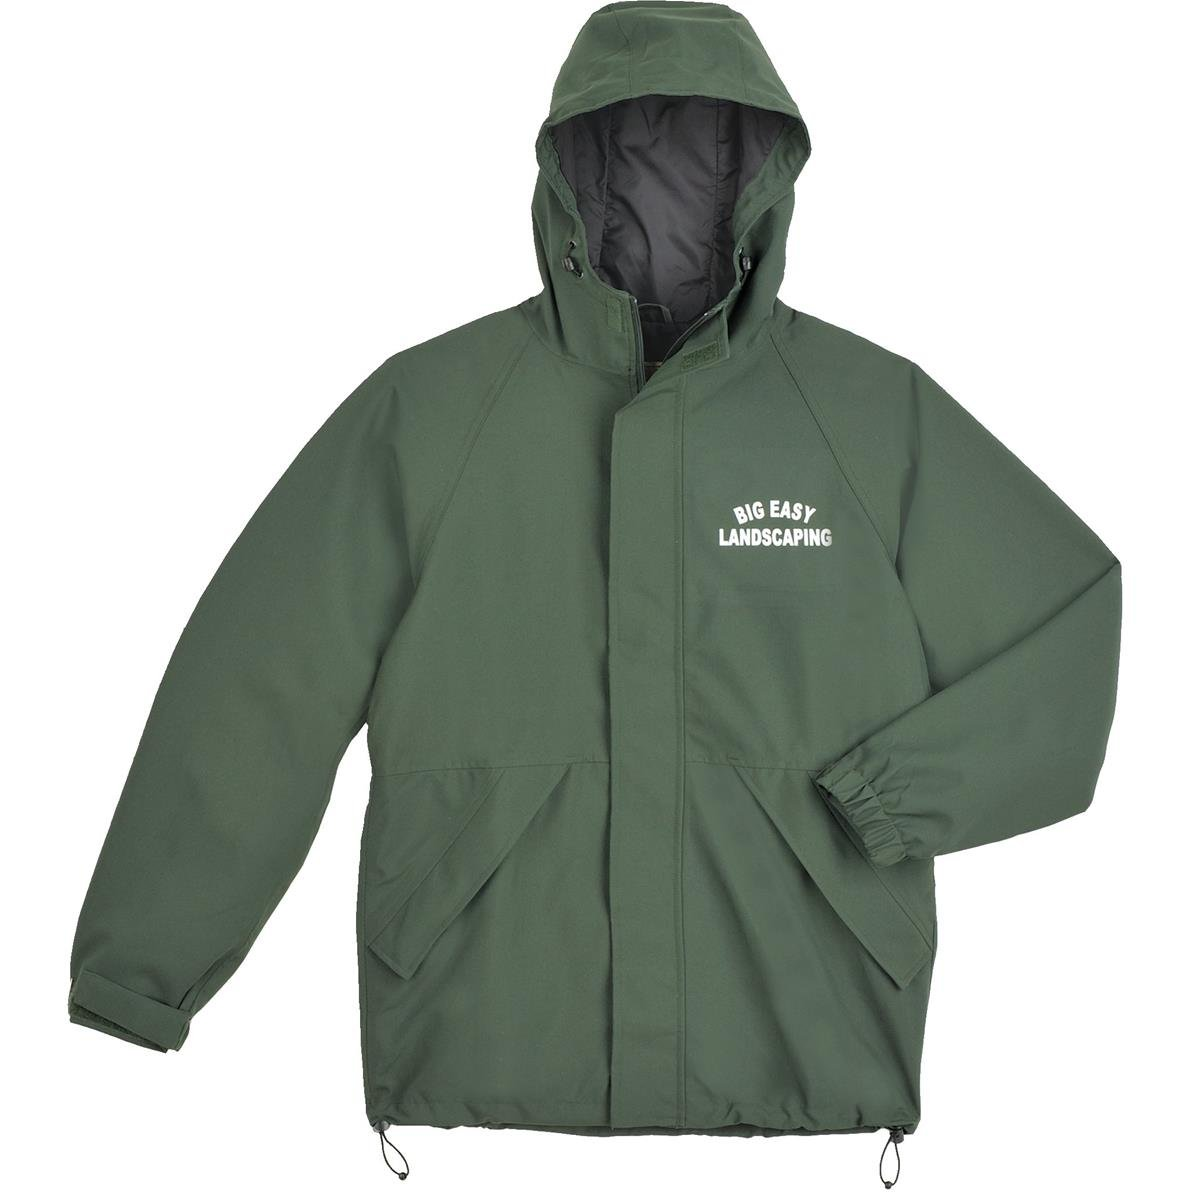 GEMPLER'S Breathable Fully-Lined Rain Jacket with 2-Way Heavy-Duty Zipper Front, Size 2XL